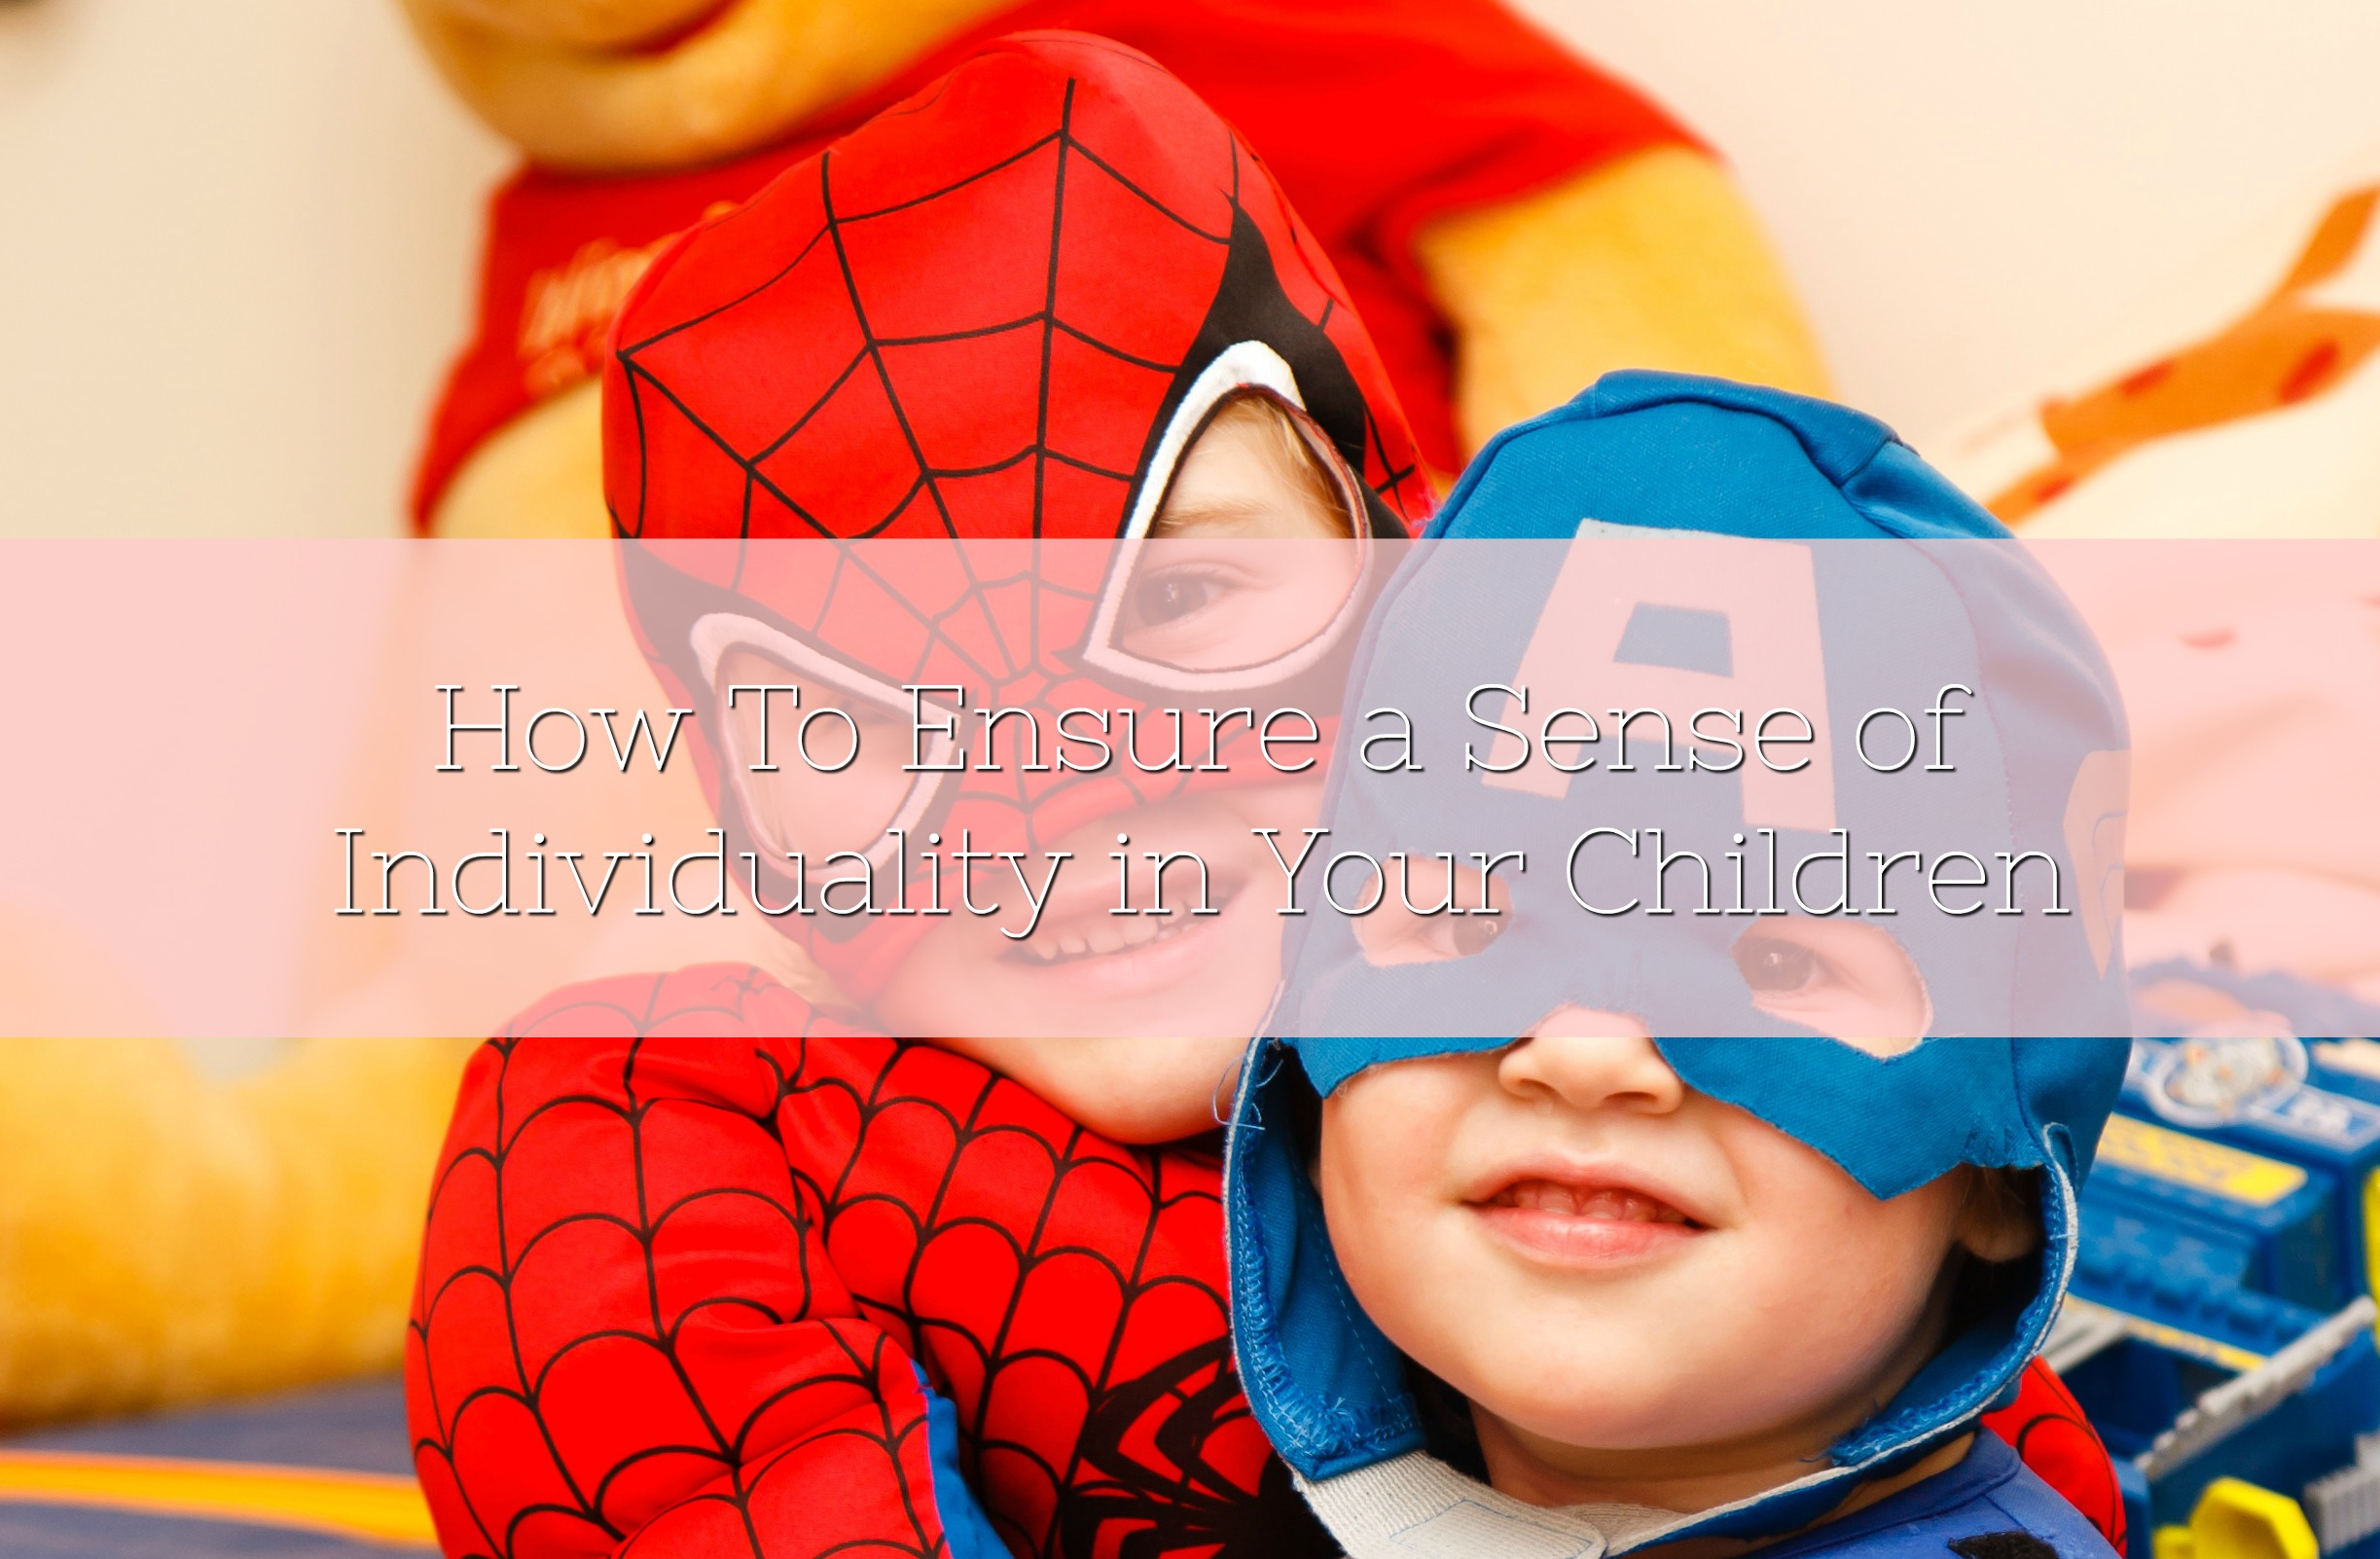 How To Ensure a Sense of Individuality in Your Children